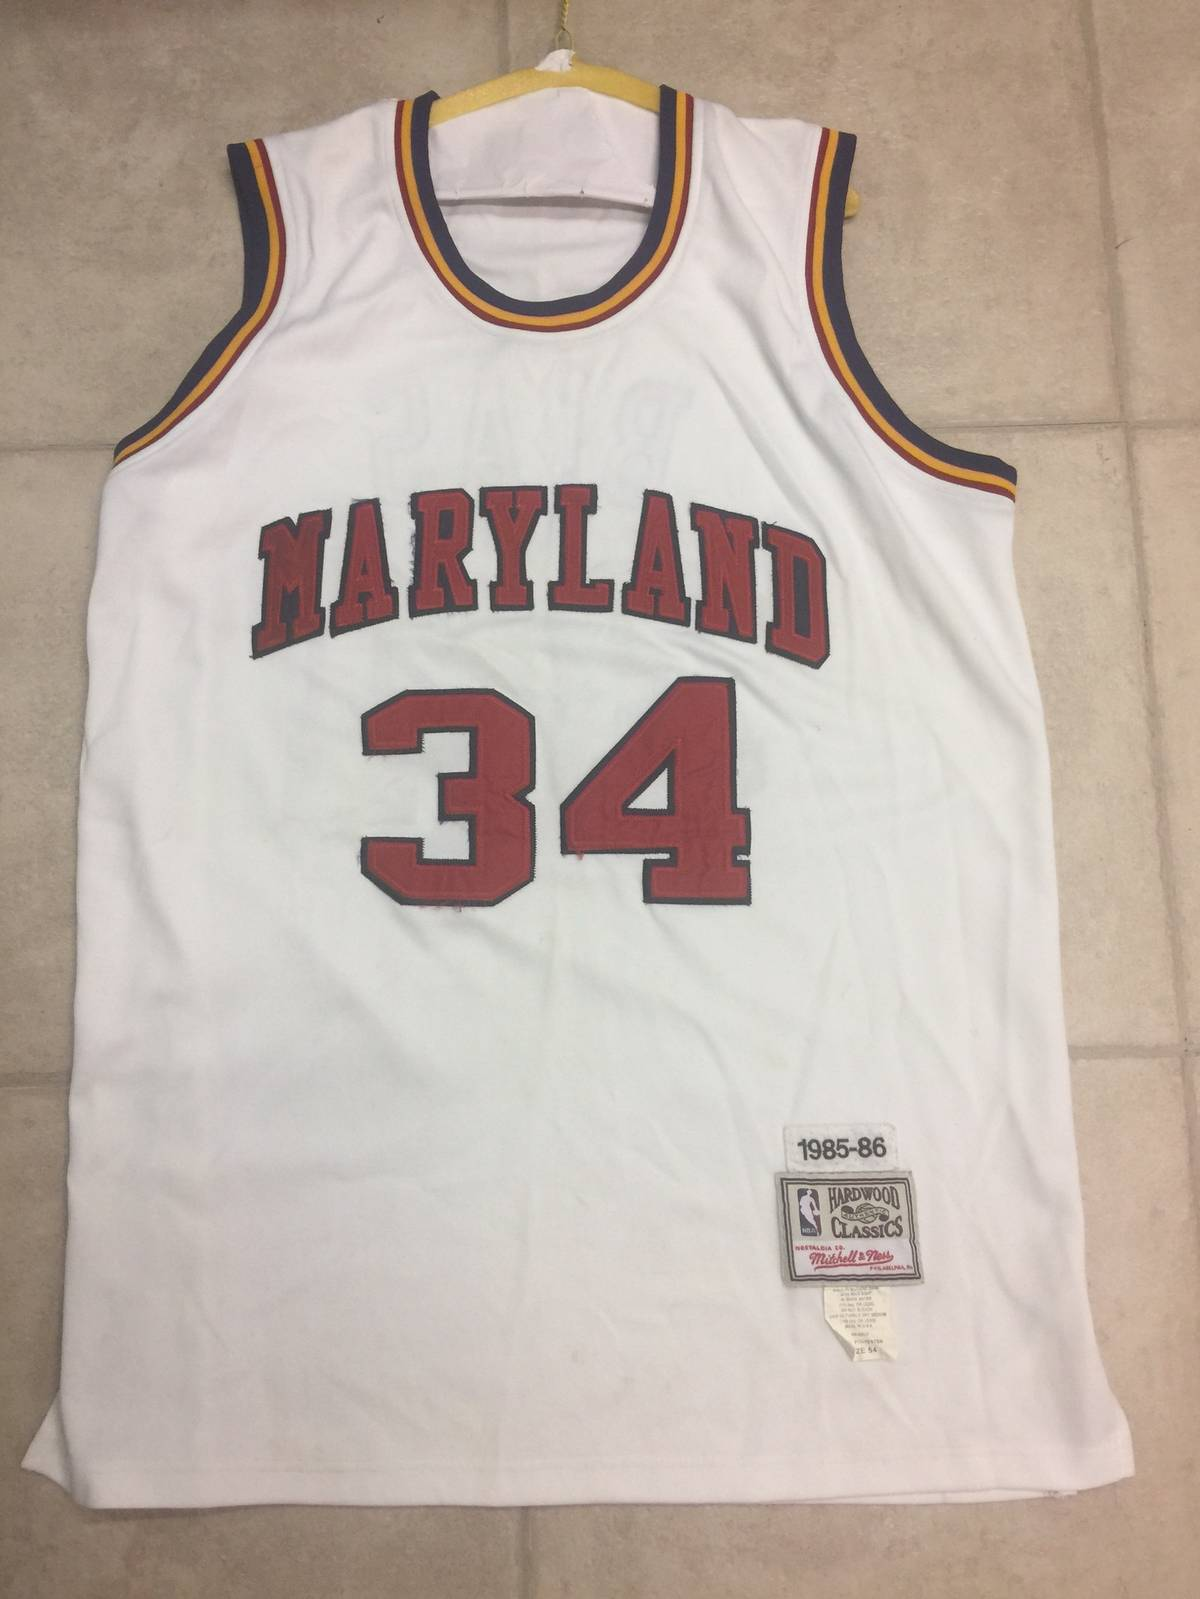 best service 04e6b 5bee7 Nba Len Bias Maryland Terrapins Mitchell & Ness College Basketball Jersey  Size Xl $56